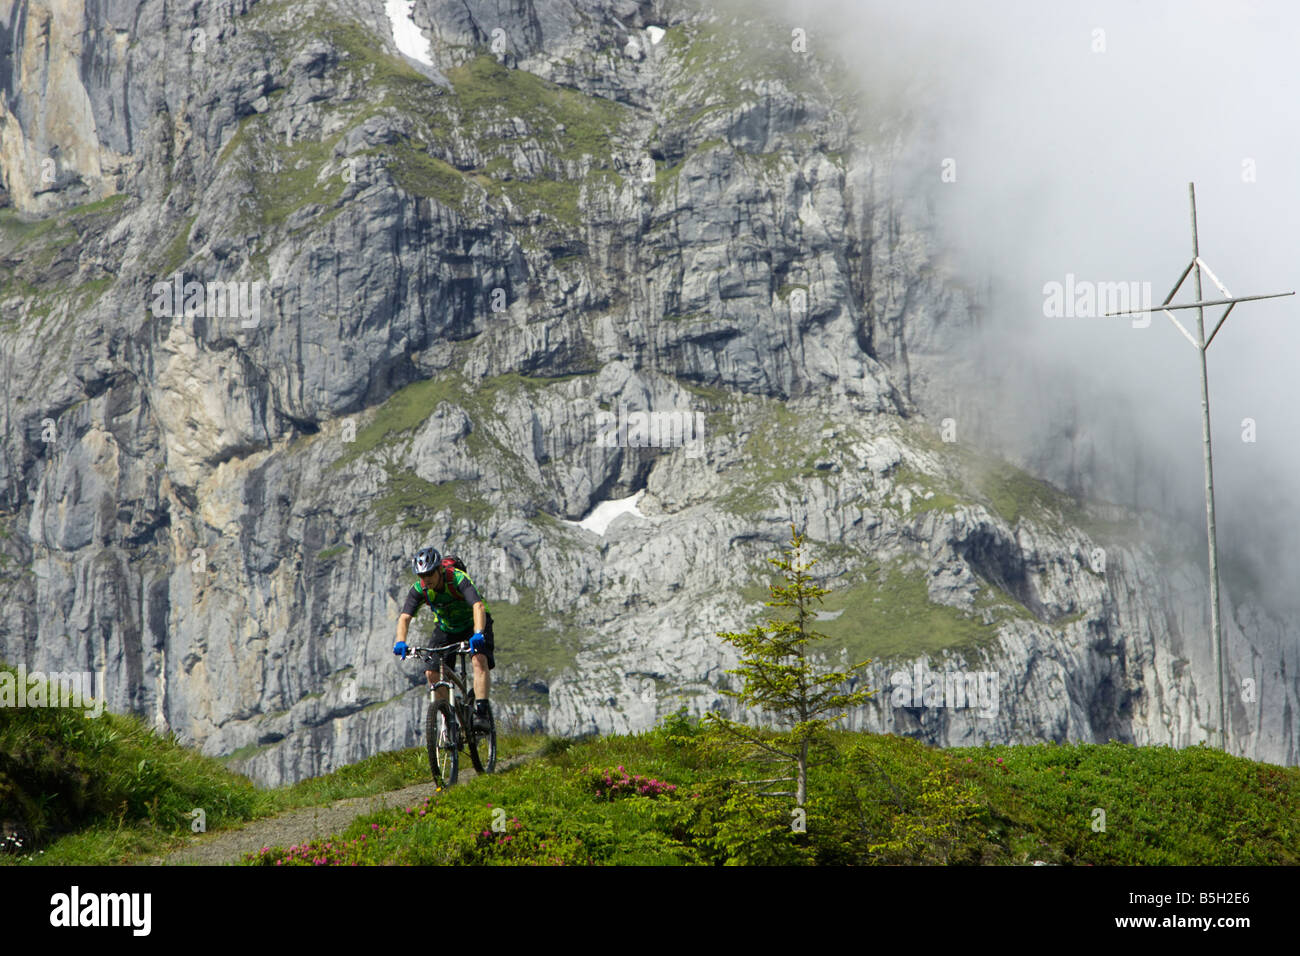 Mountainbike rider in front of a rock face - Stock Image